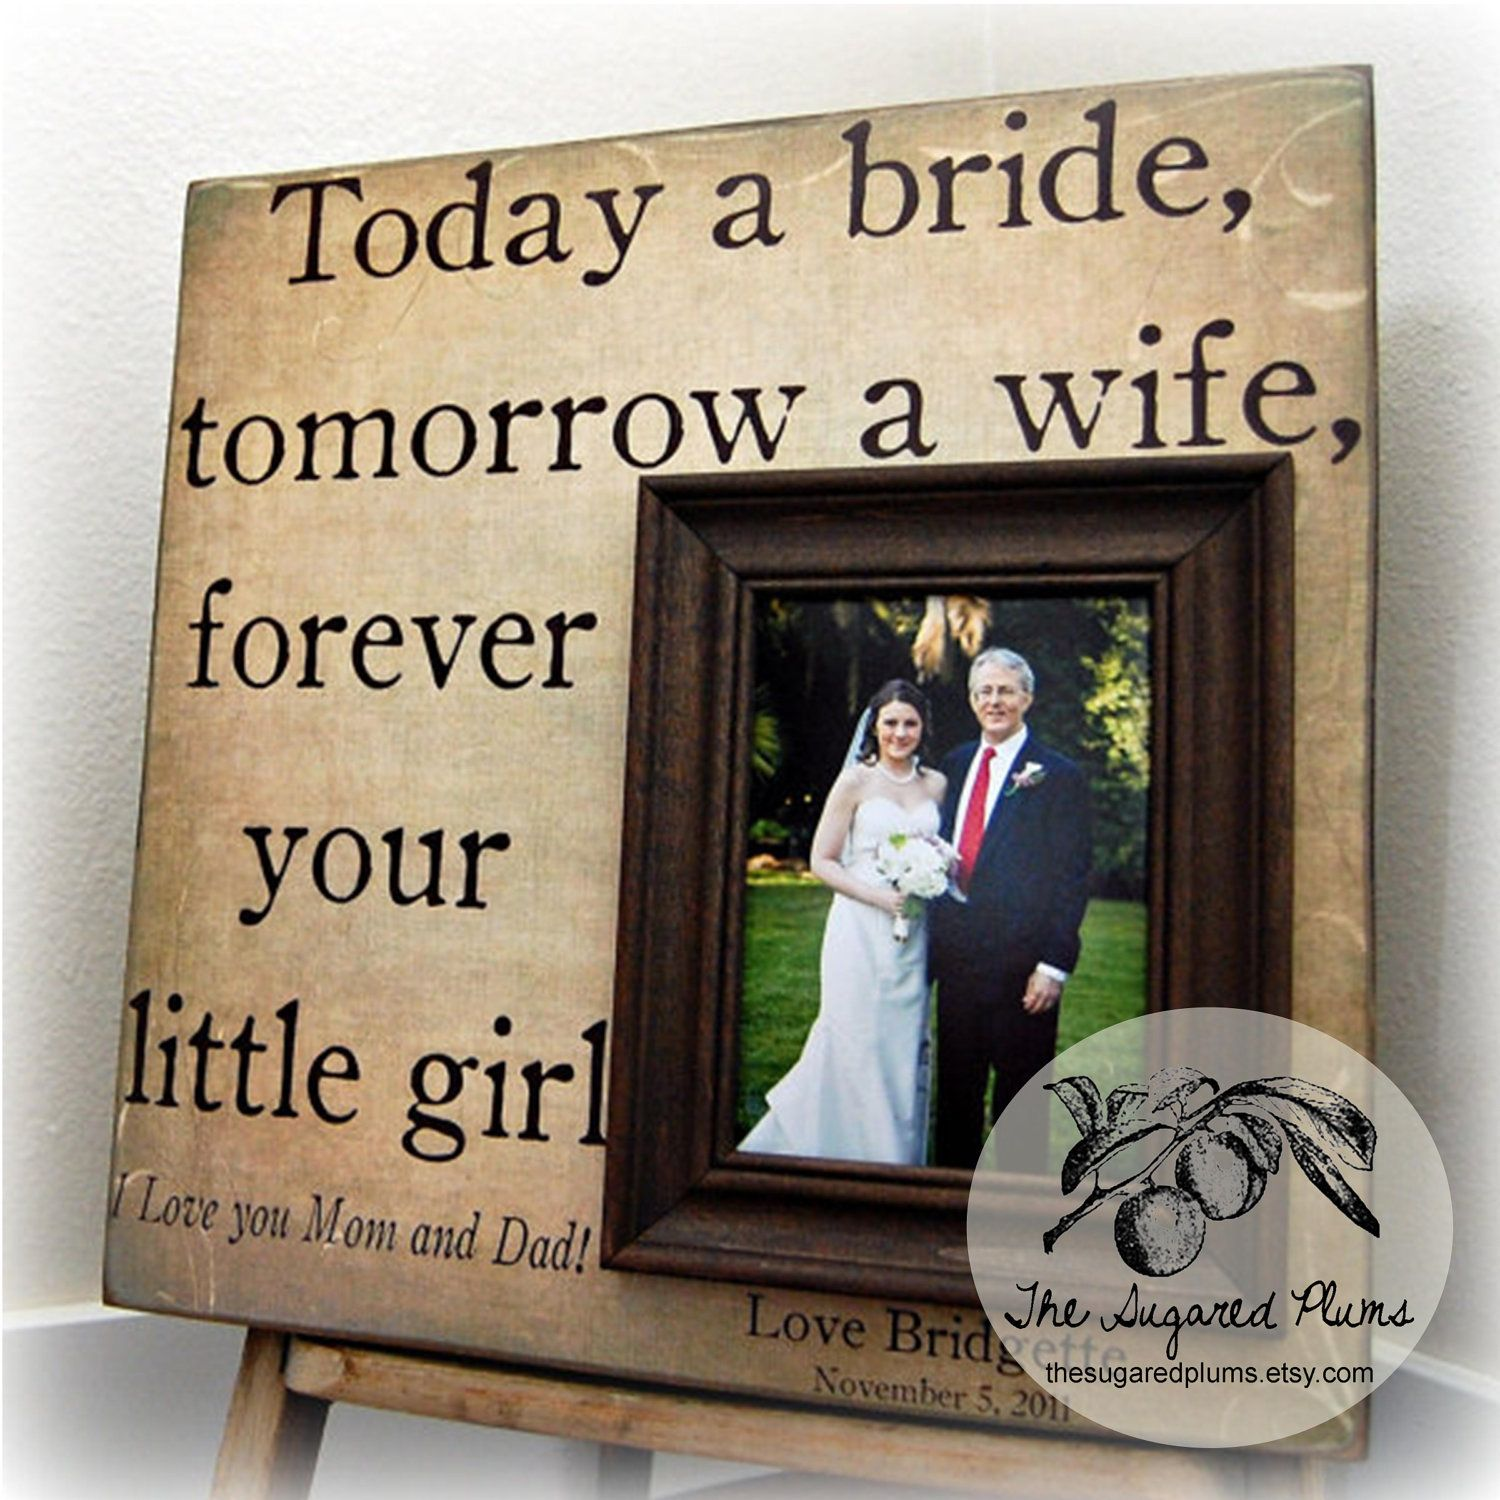 Father Of The Bride Gift From Bride, Today A Bride,